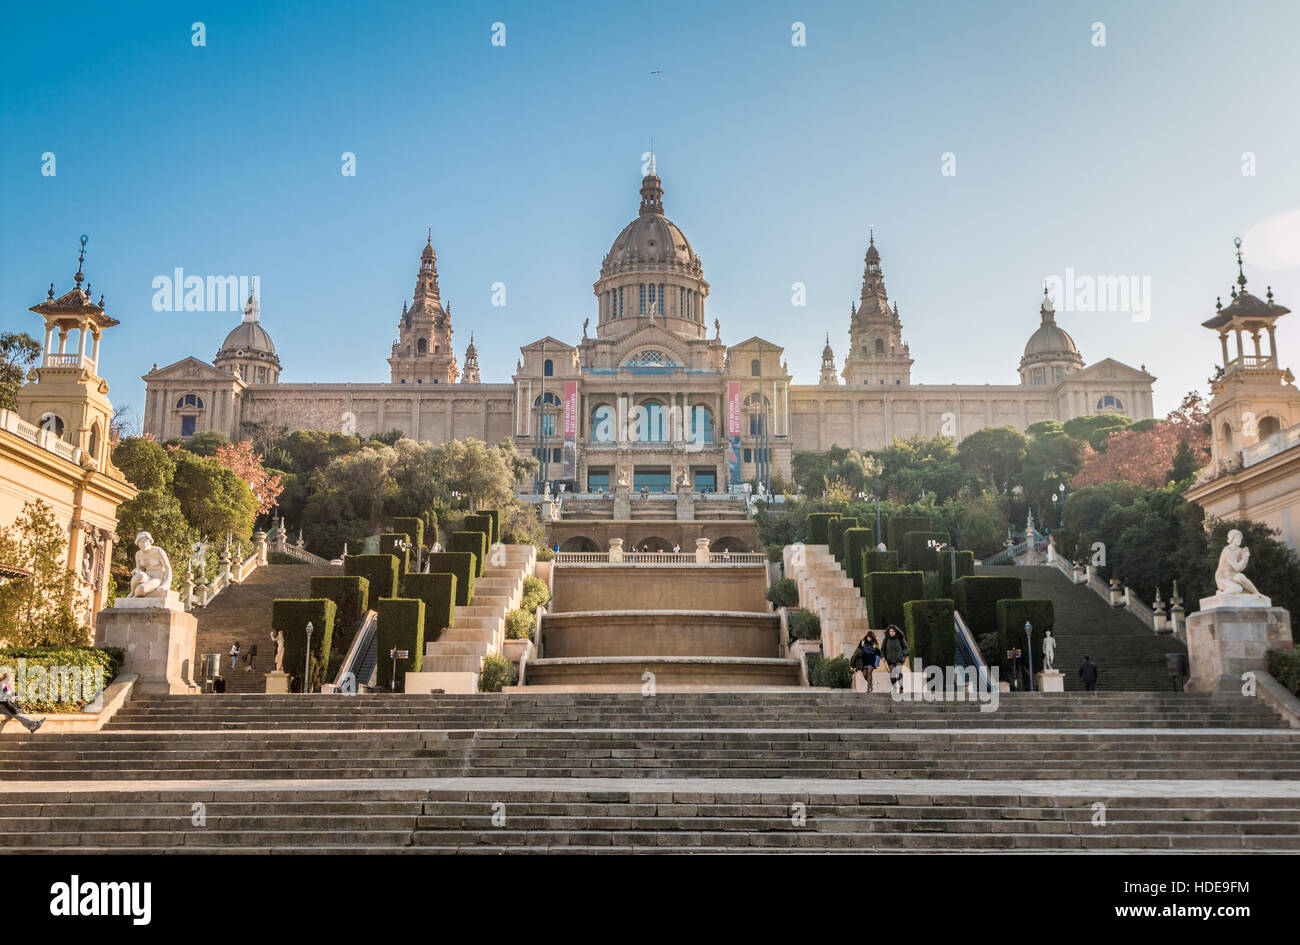 National museum of Arts in Barcelona - Stock Image